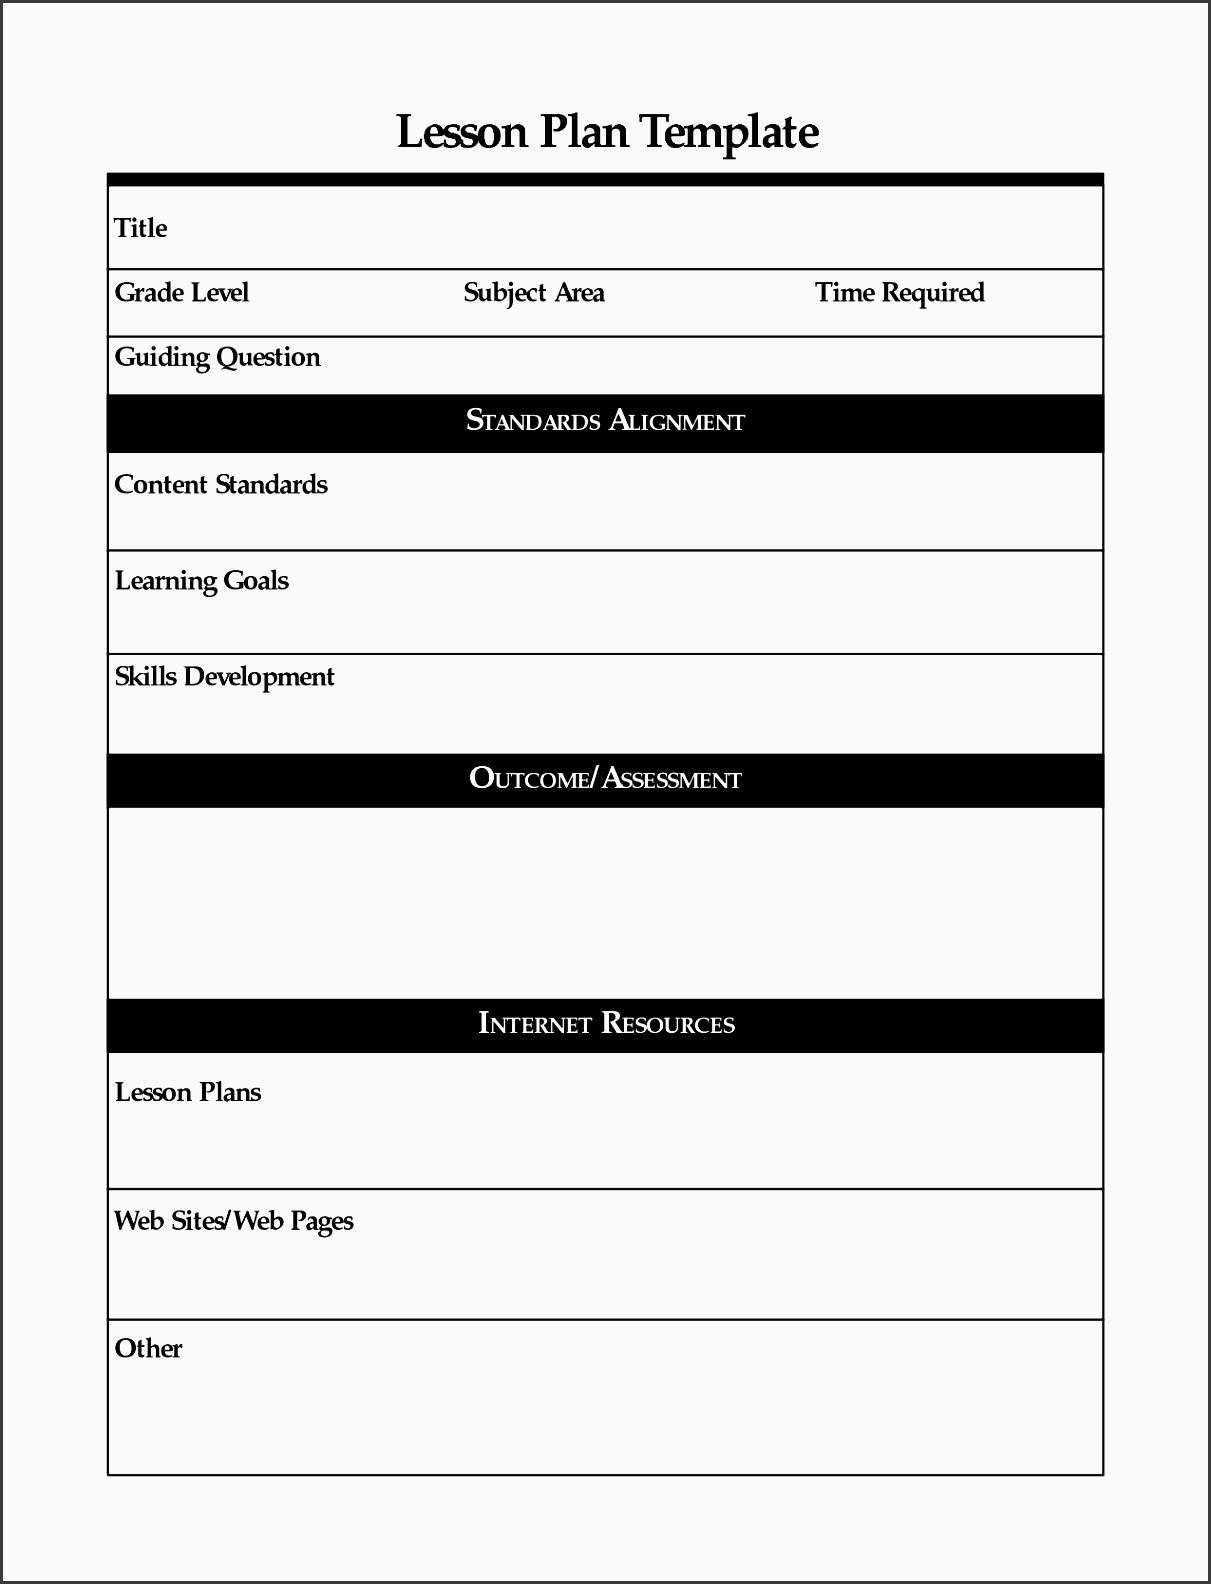 singapore math lesson plan template - 9 free lesson planner template online sampletemplatess